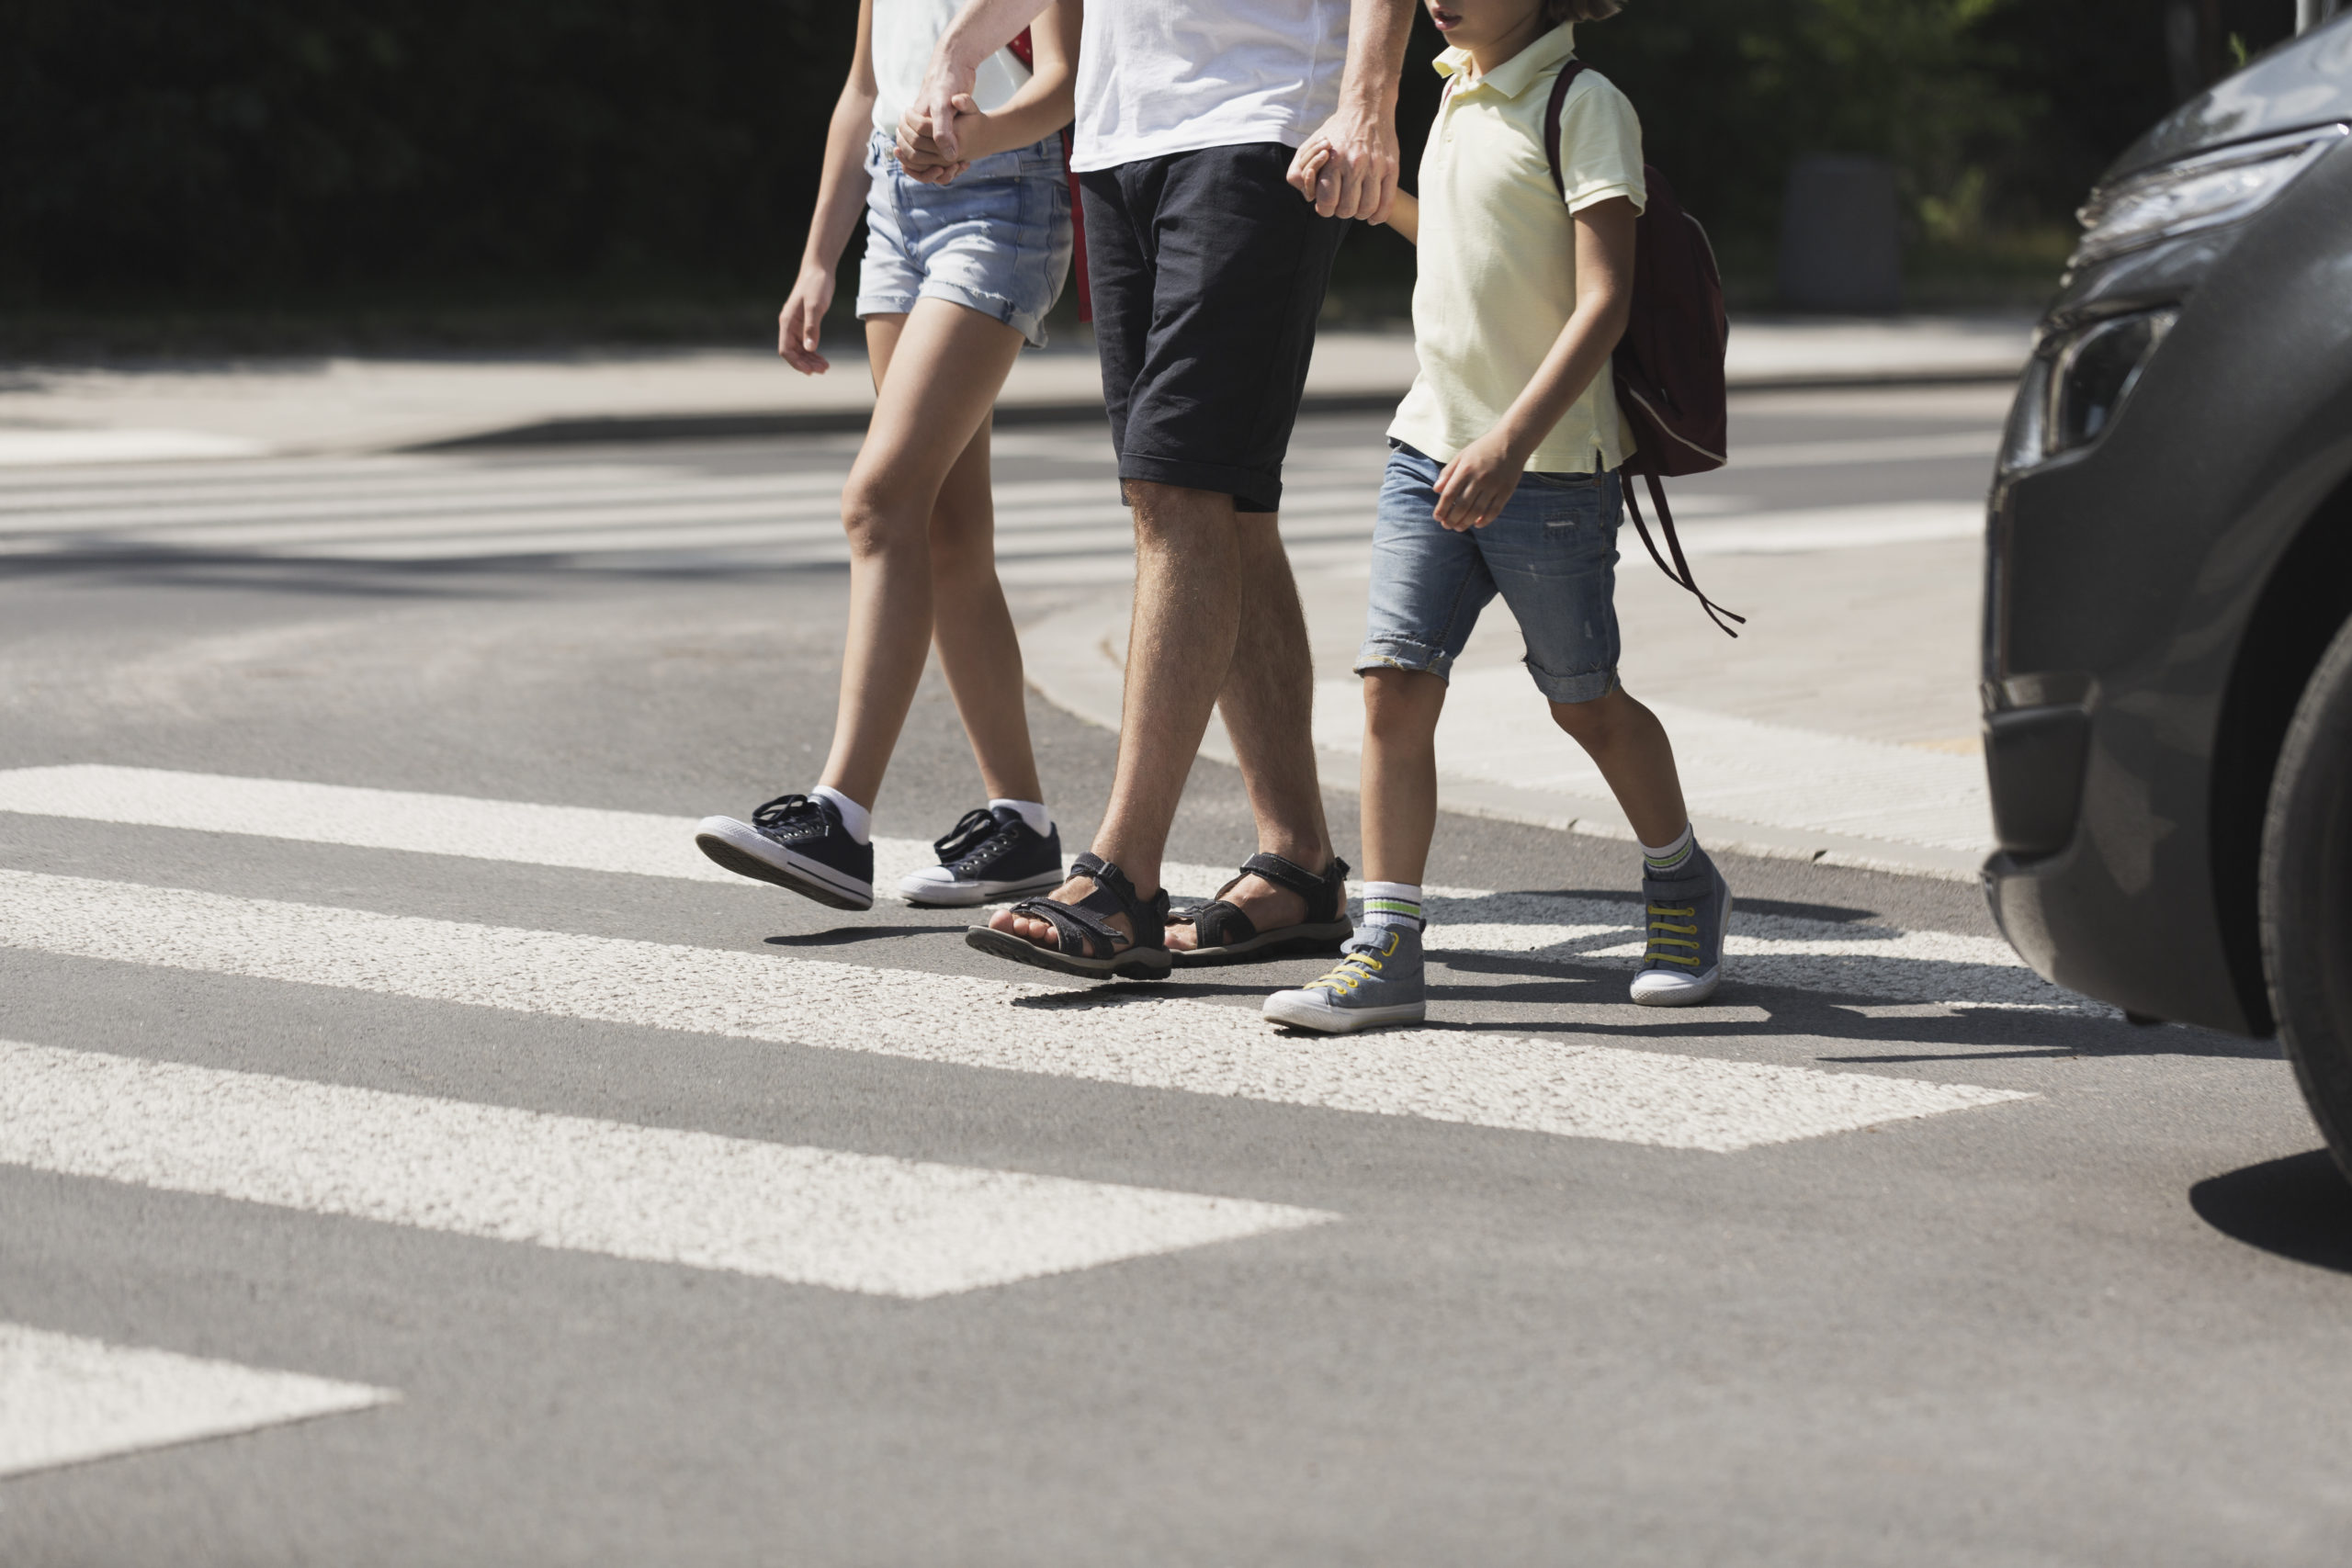 pedestrians crossing the street in Winston-Salem